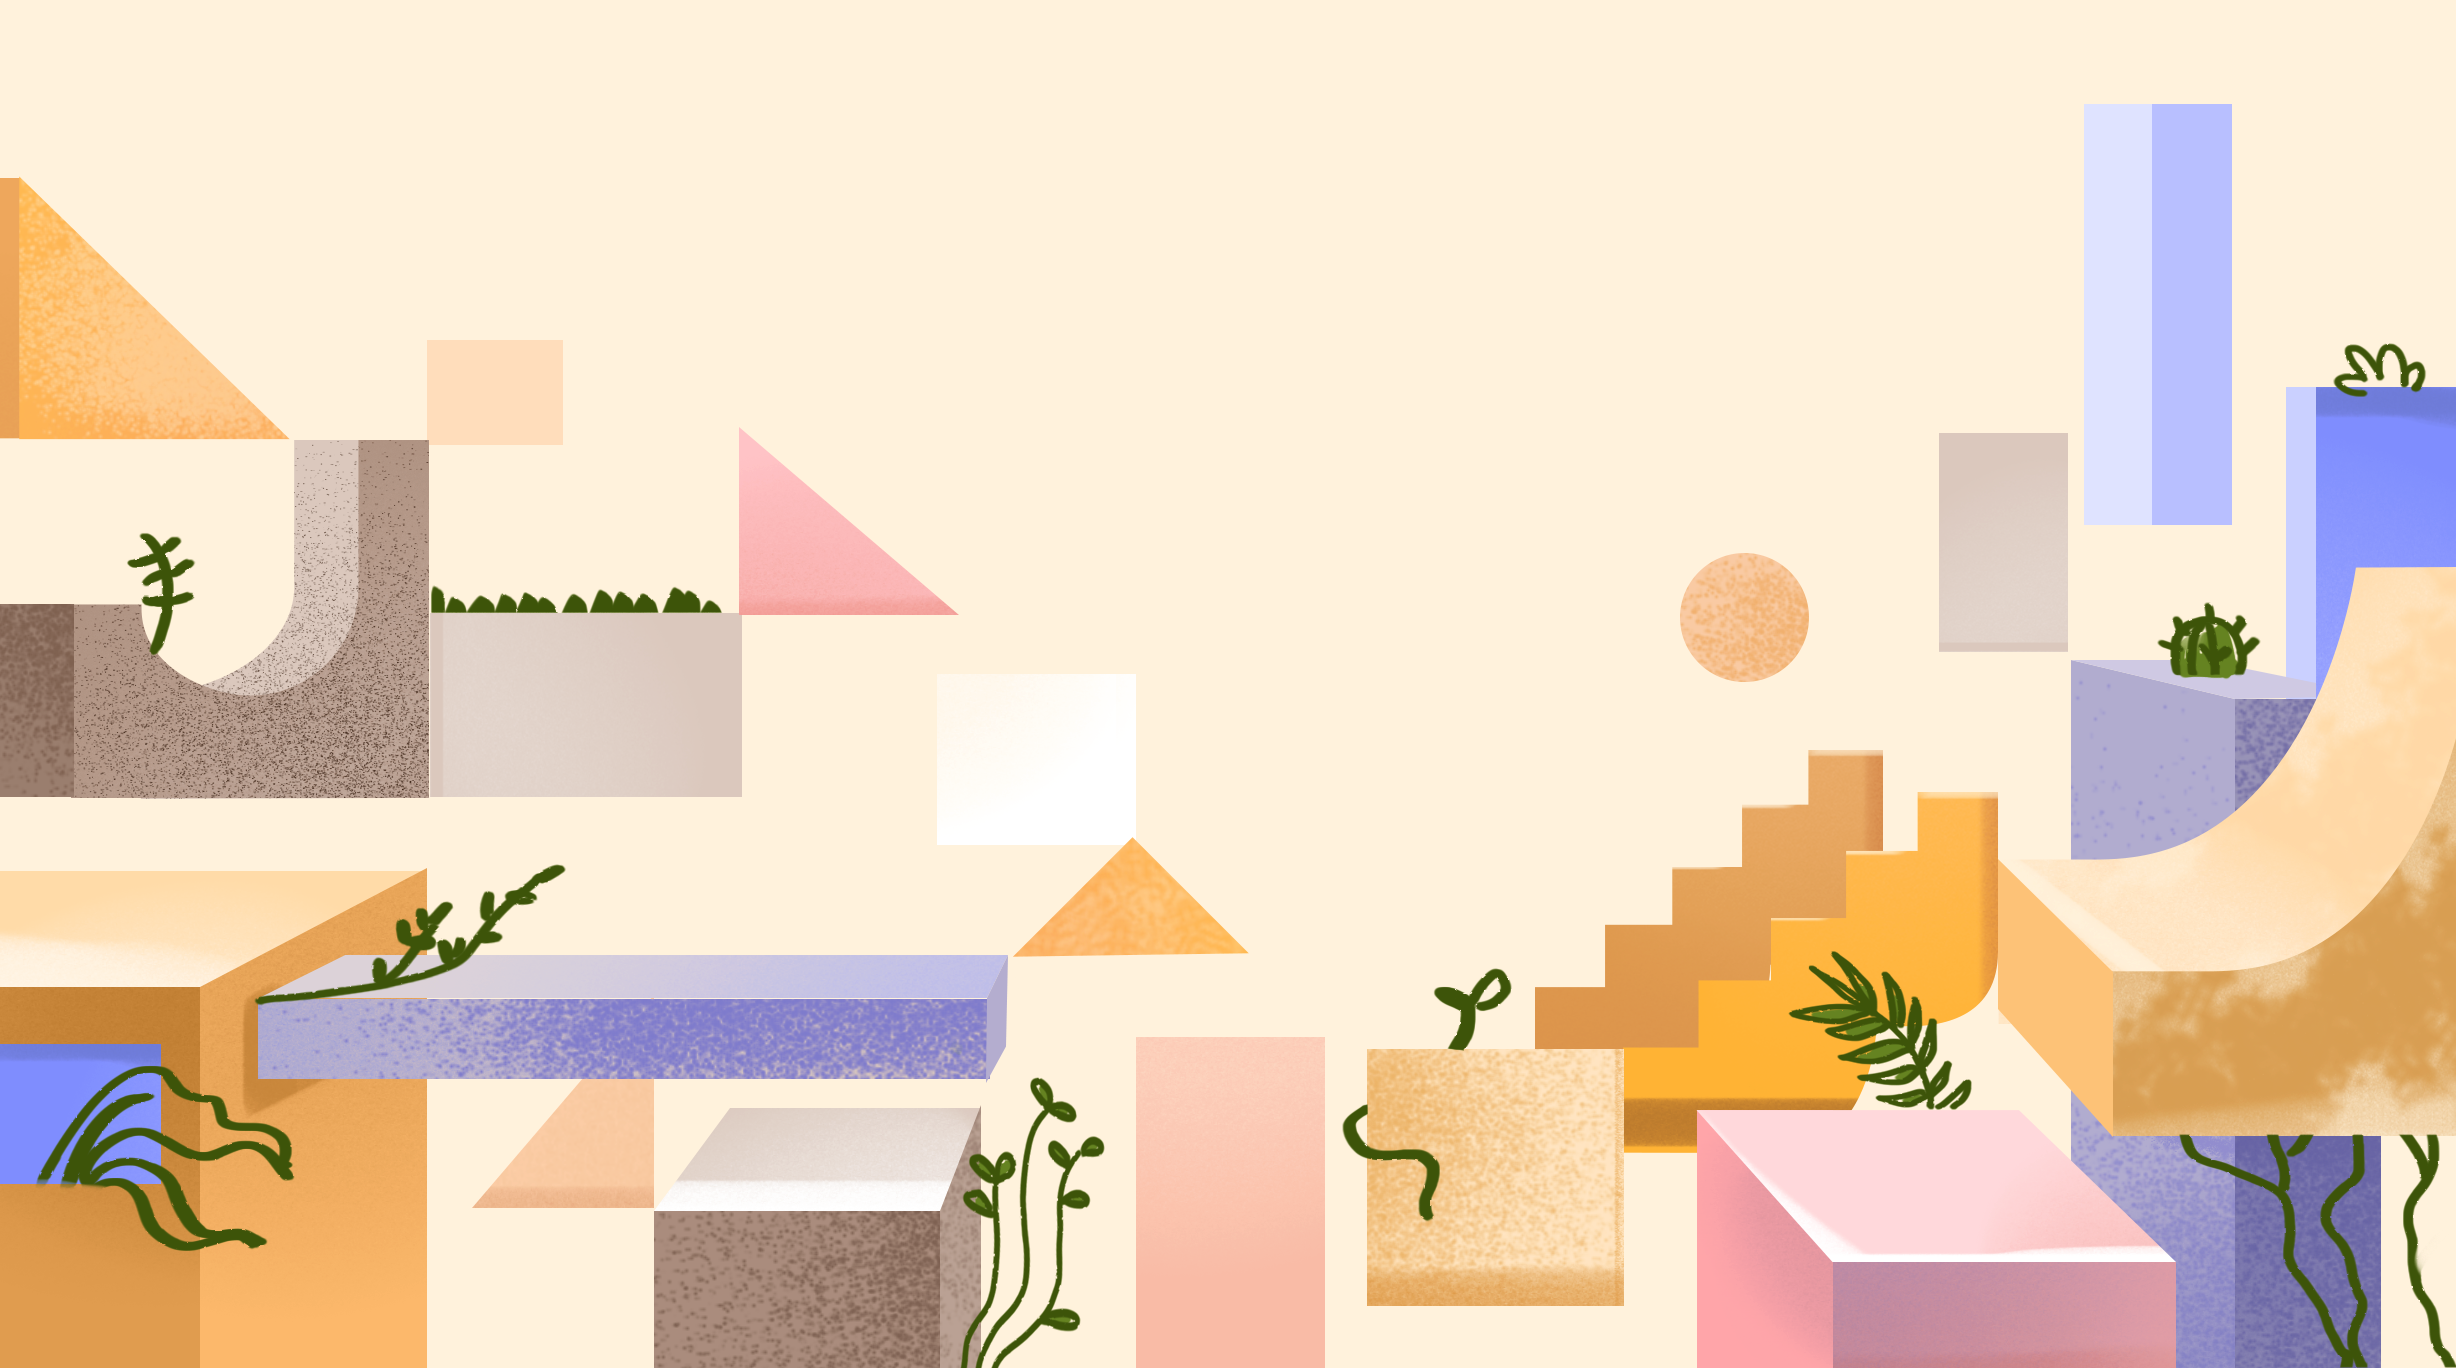 Various geometric shapes in pastel colors with green plants on a light background.